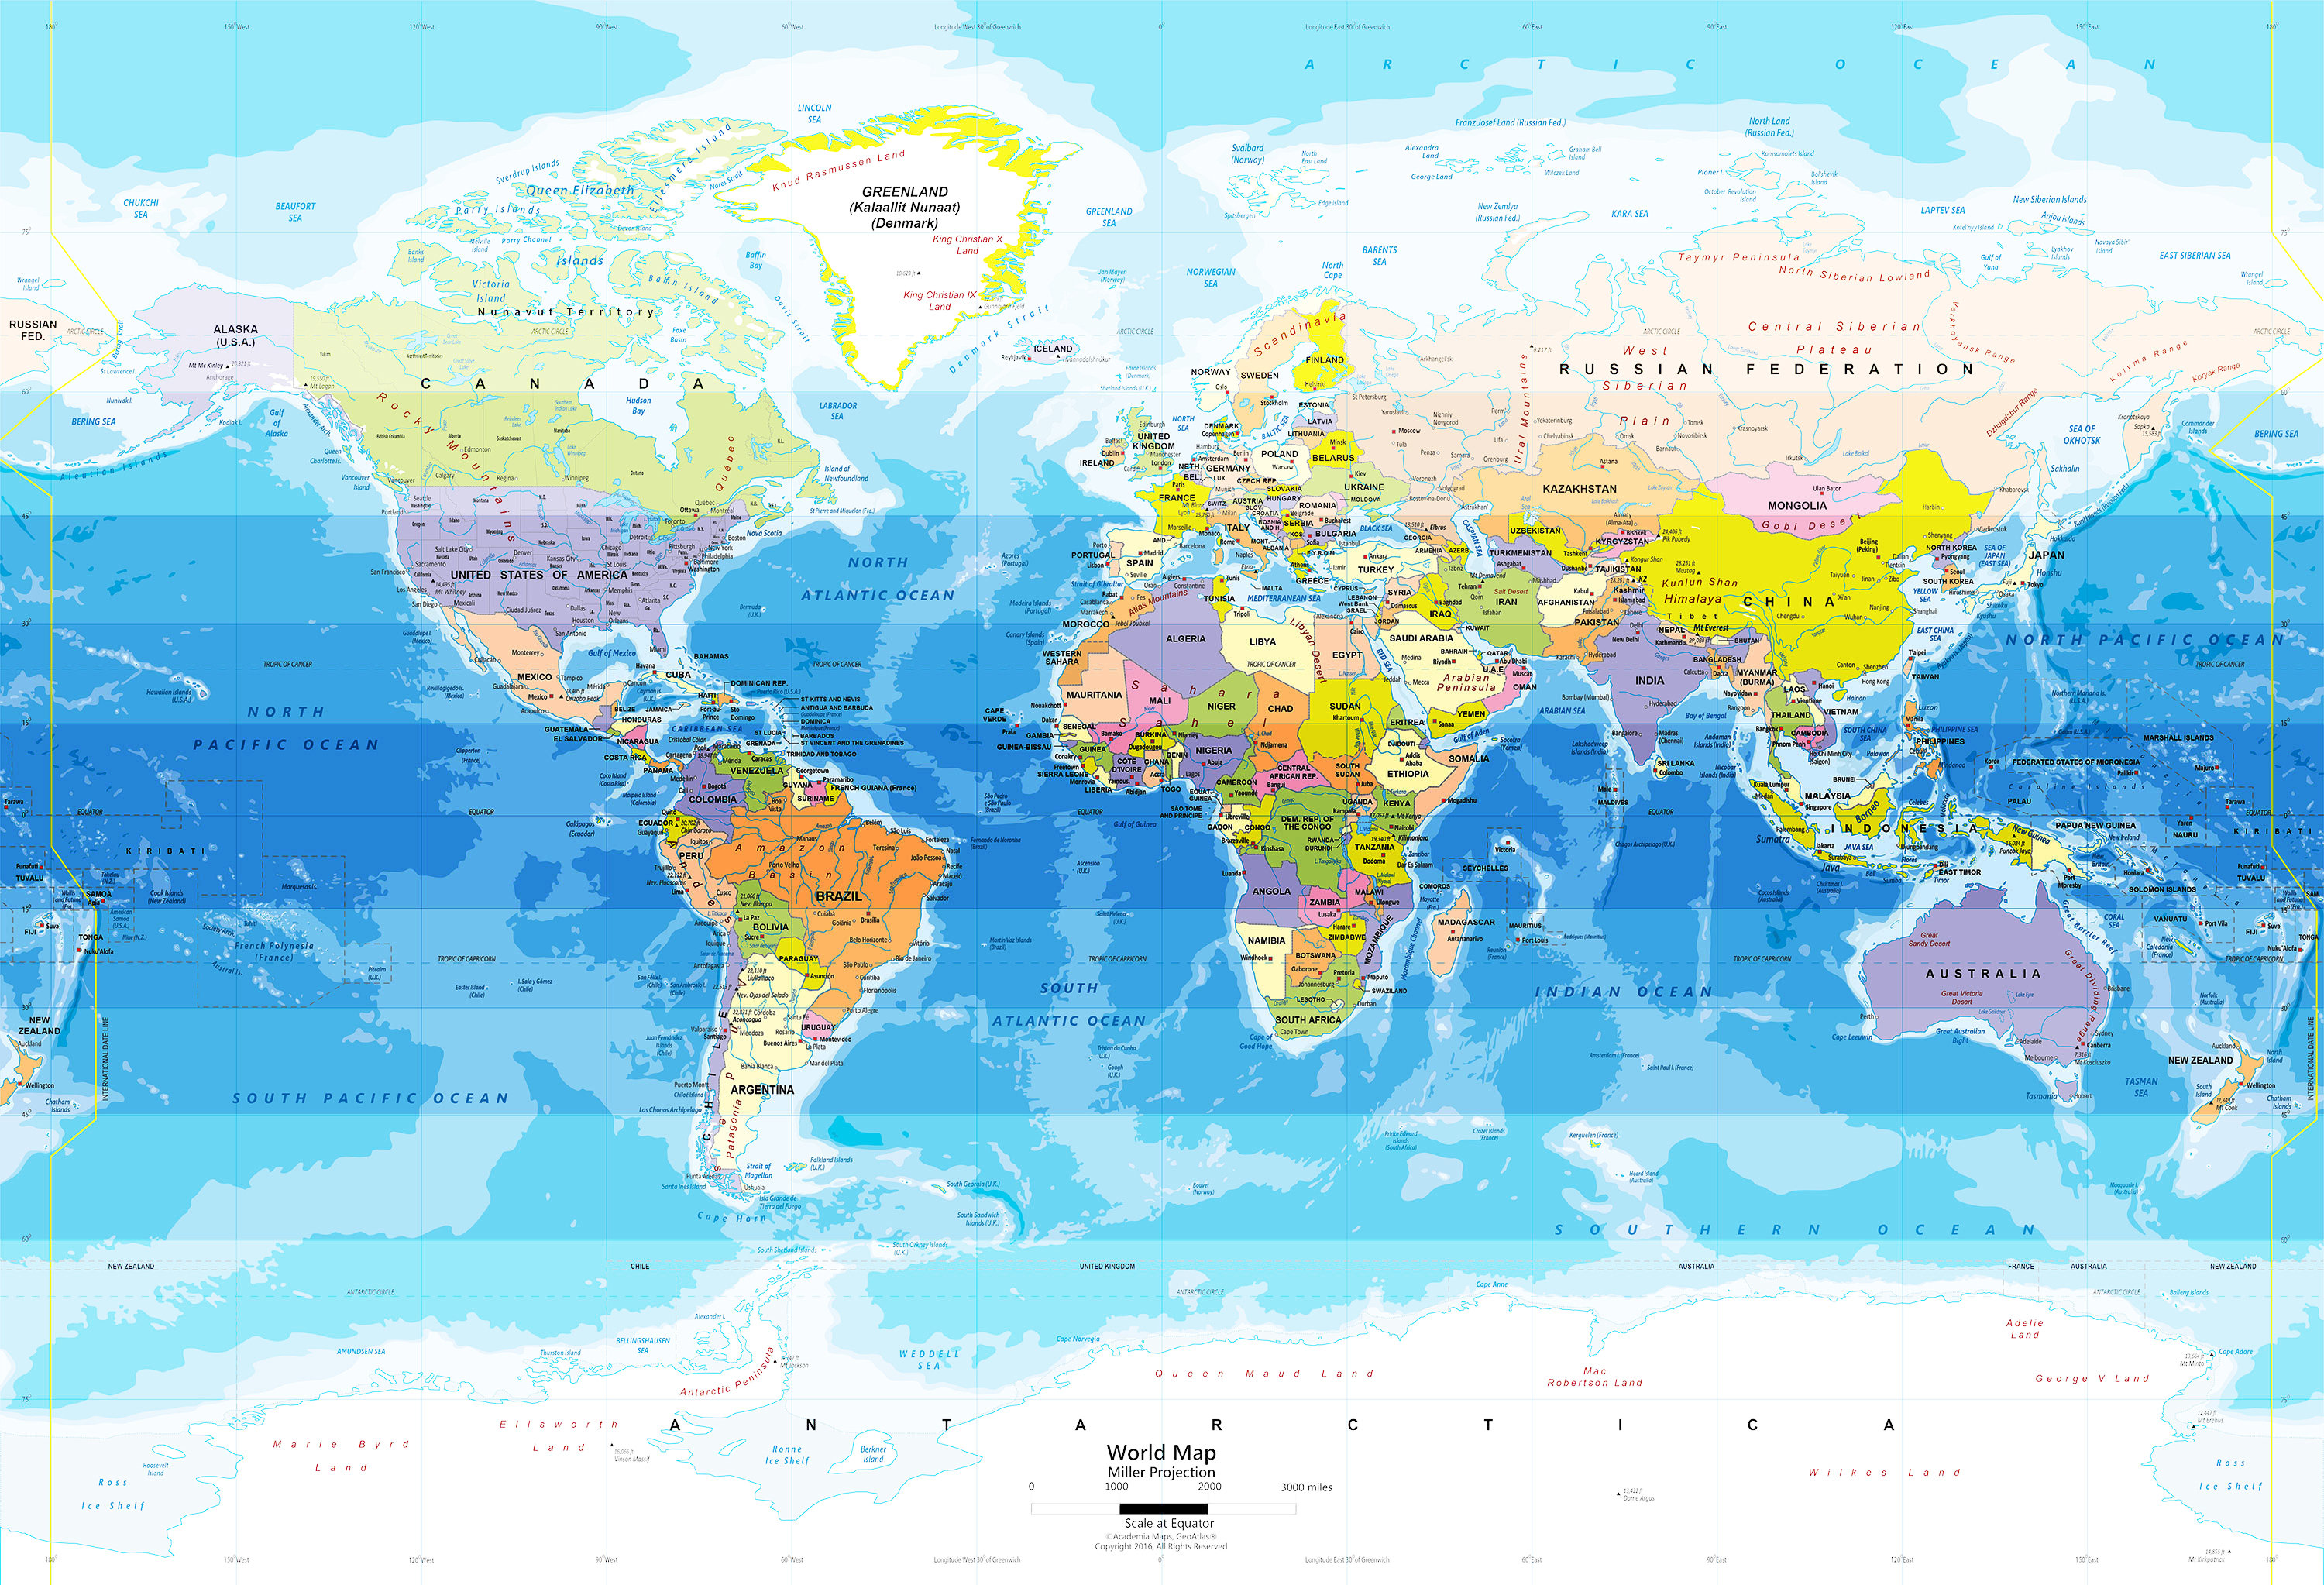 Global world map australia world map besttabletfor me and on global world map strategic relocation maps ice age farmer wiki gumiabroncs Choice Image